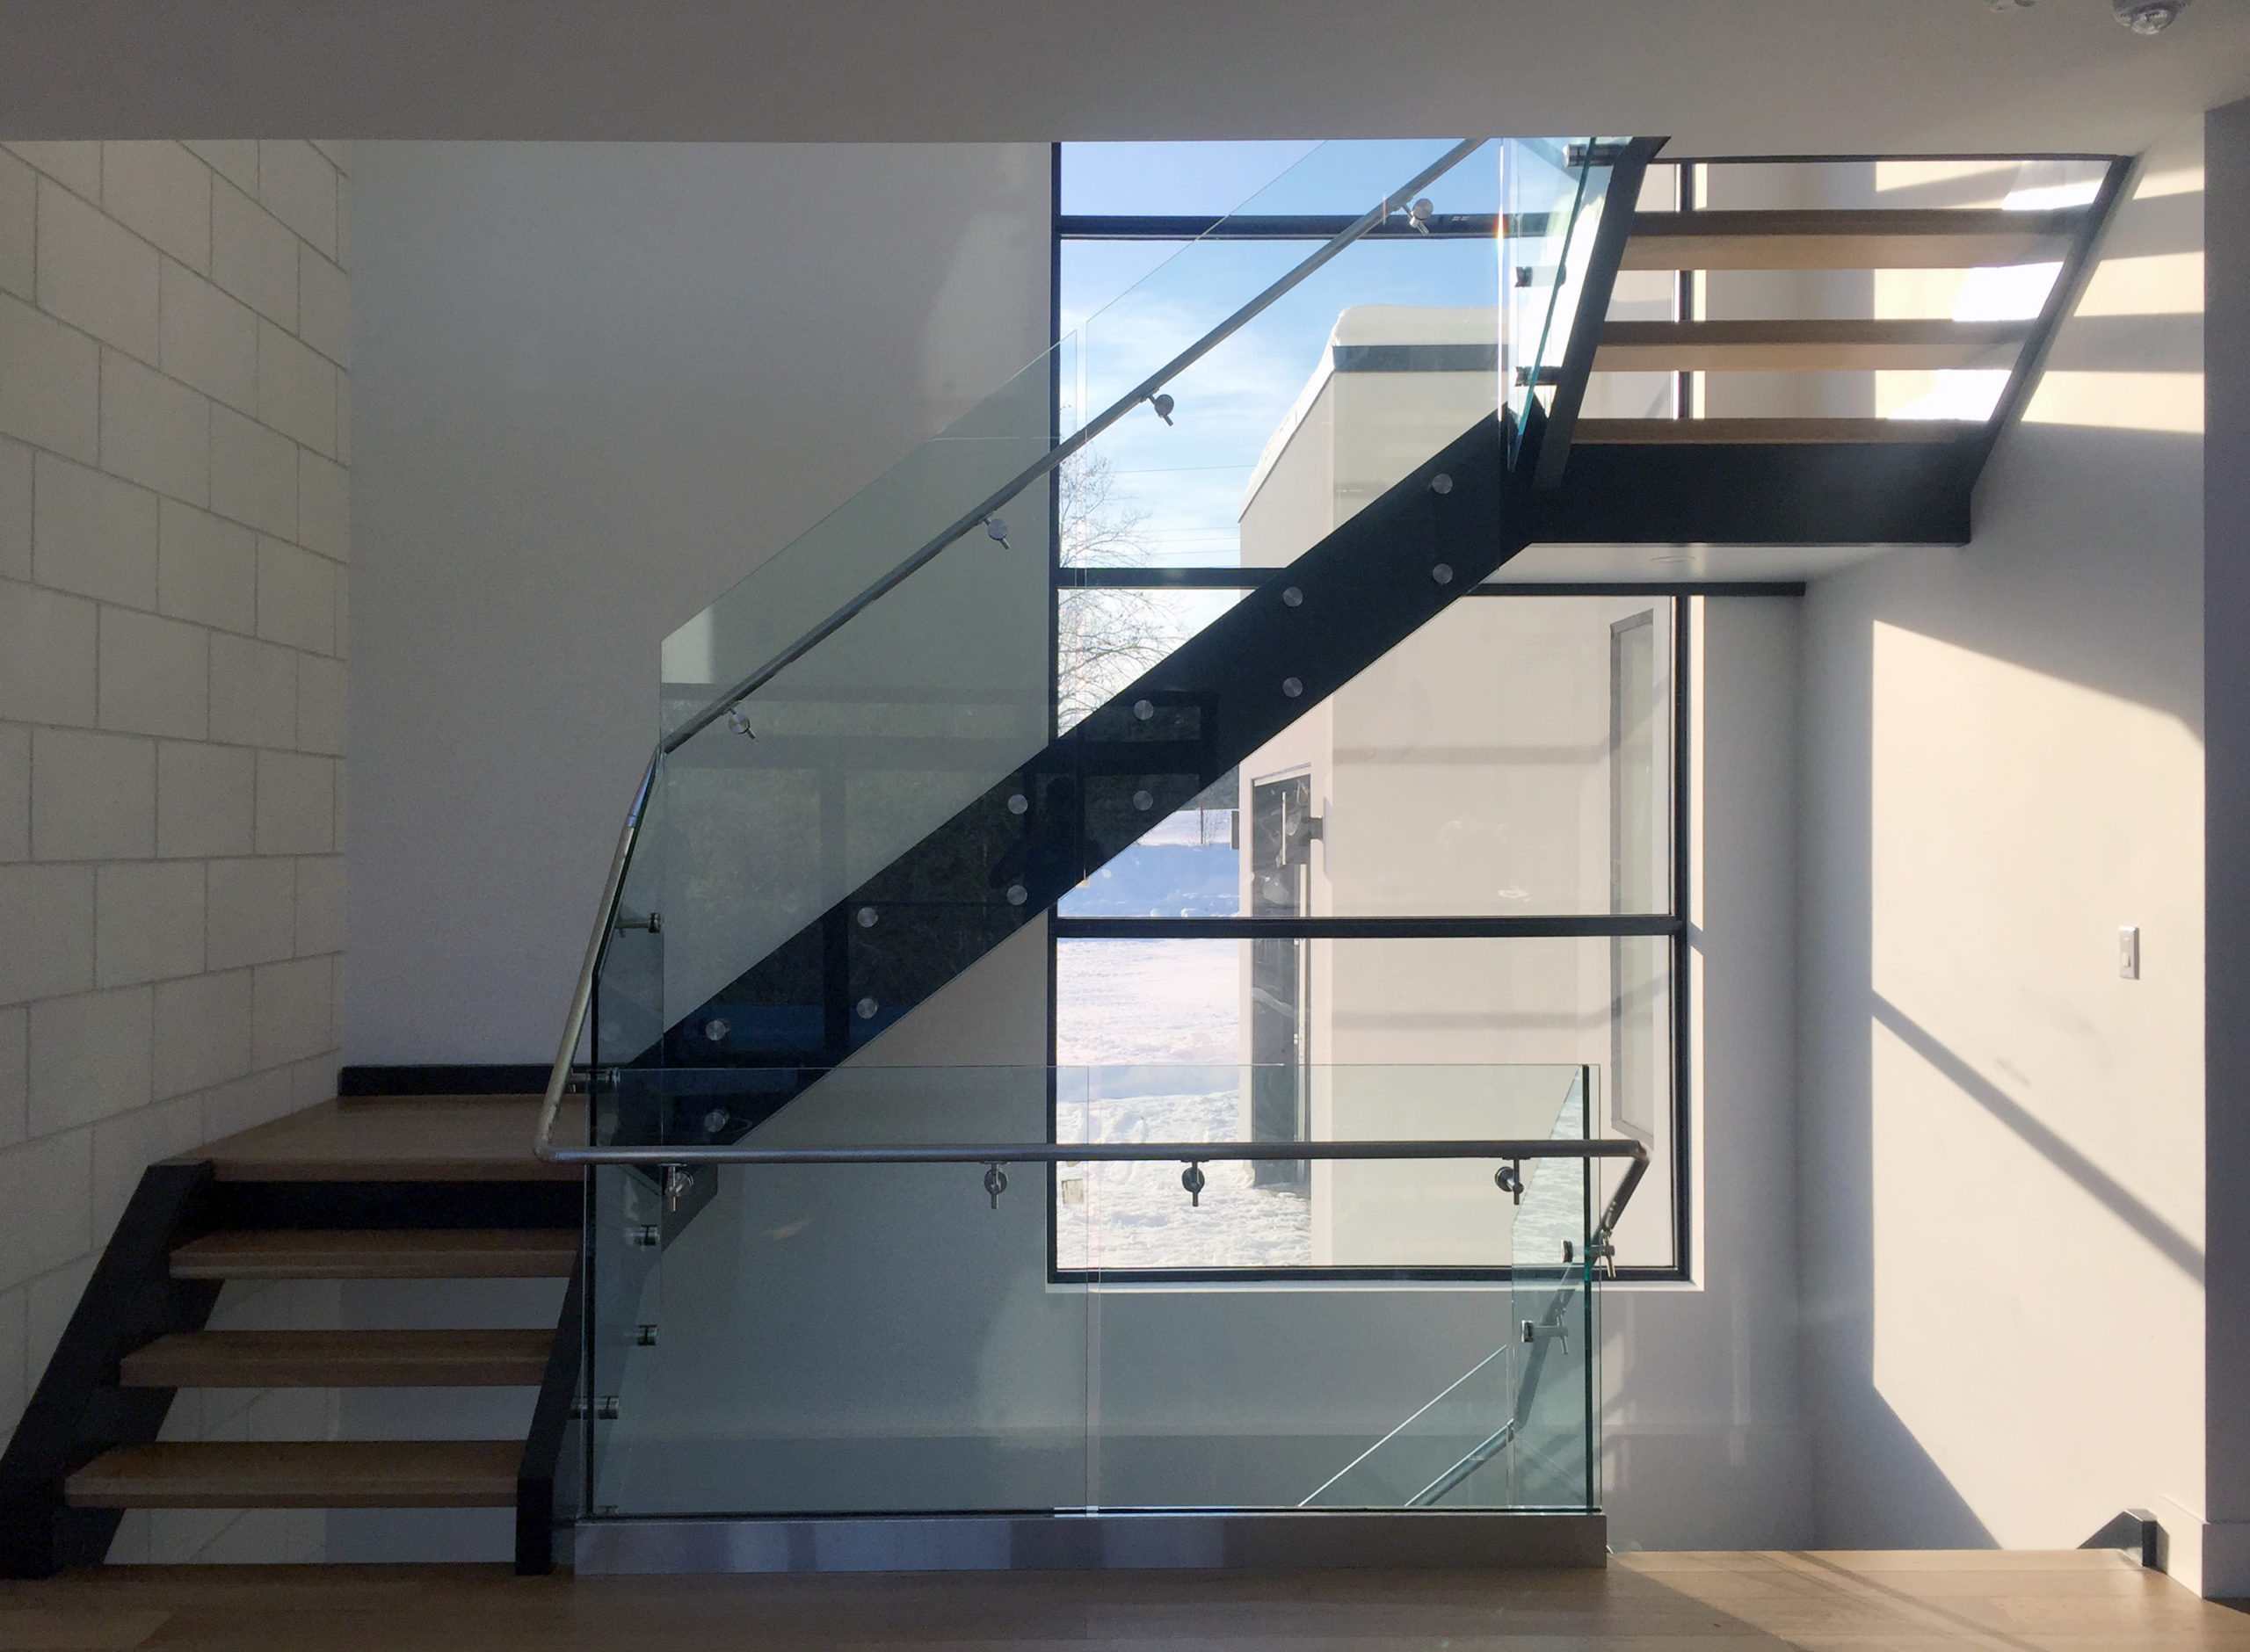 glass railings inside home on staircase